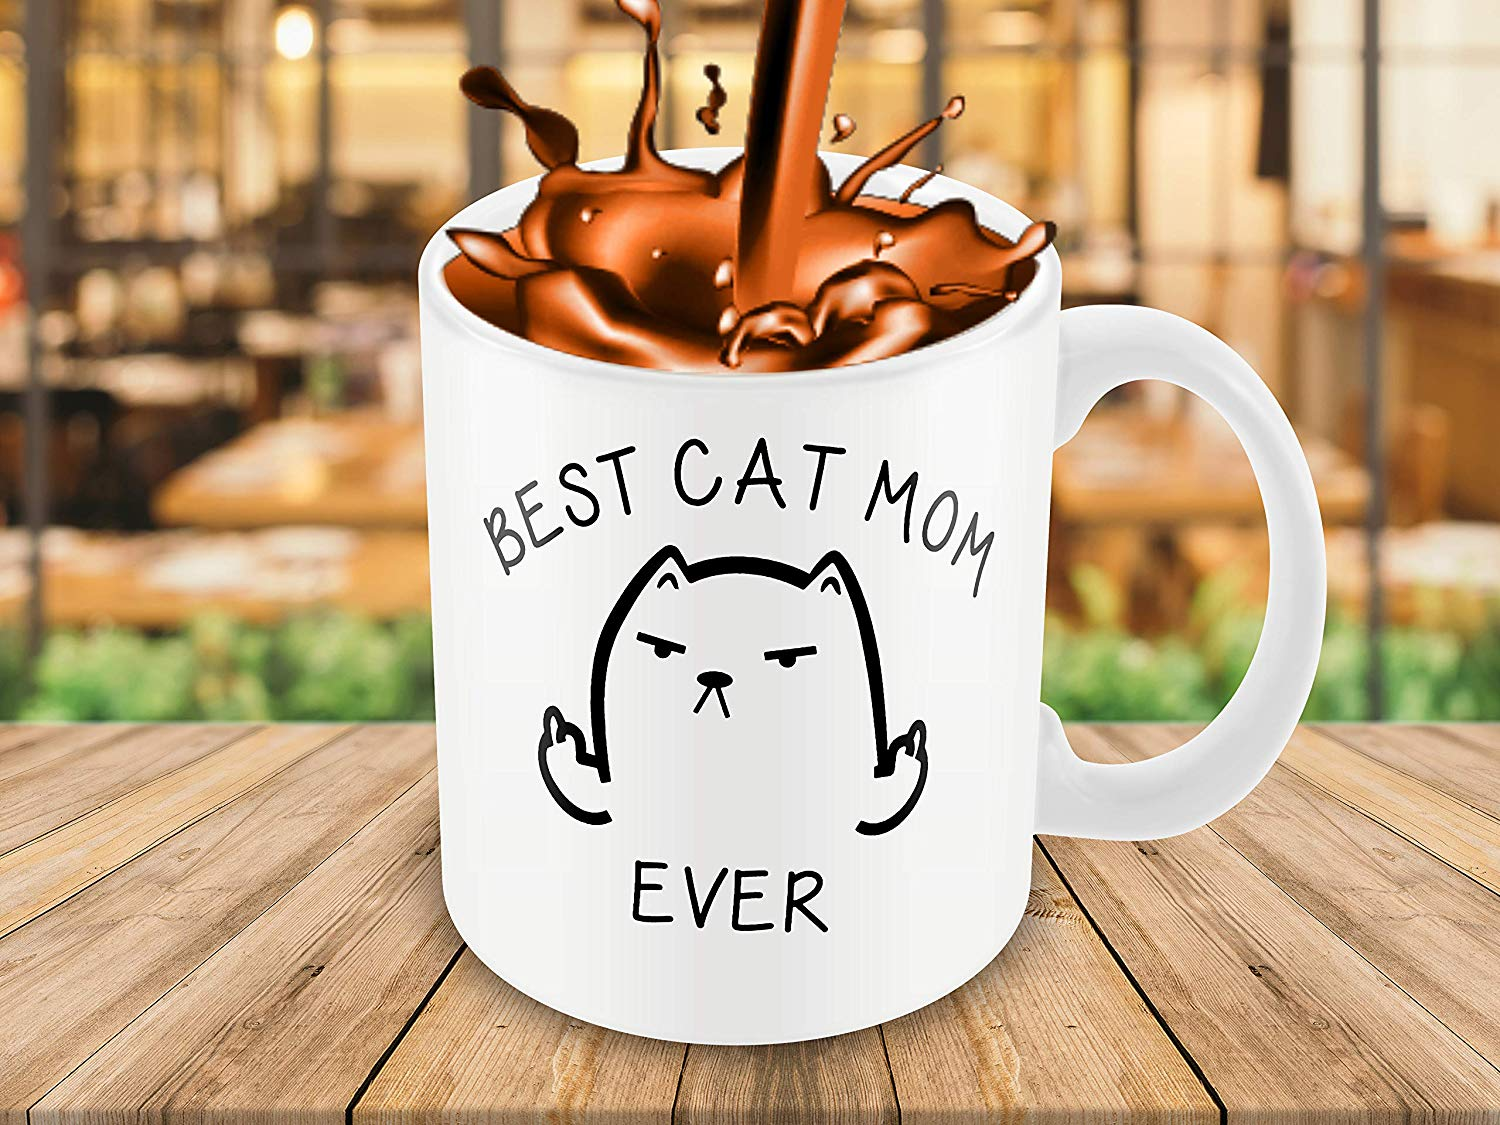 Best Cat Mom Ever Funny Coffee Mug Cat Middle Finger 11 Oz Birthday Gift For MotherMom Or Wife B079FRN7MM 3